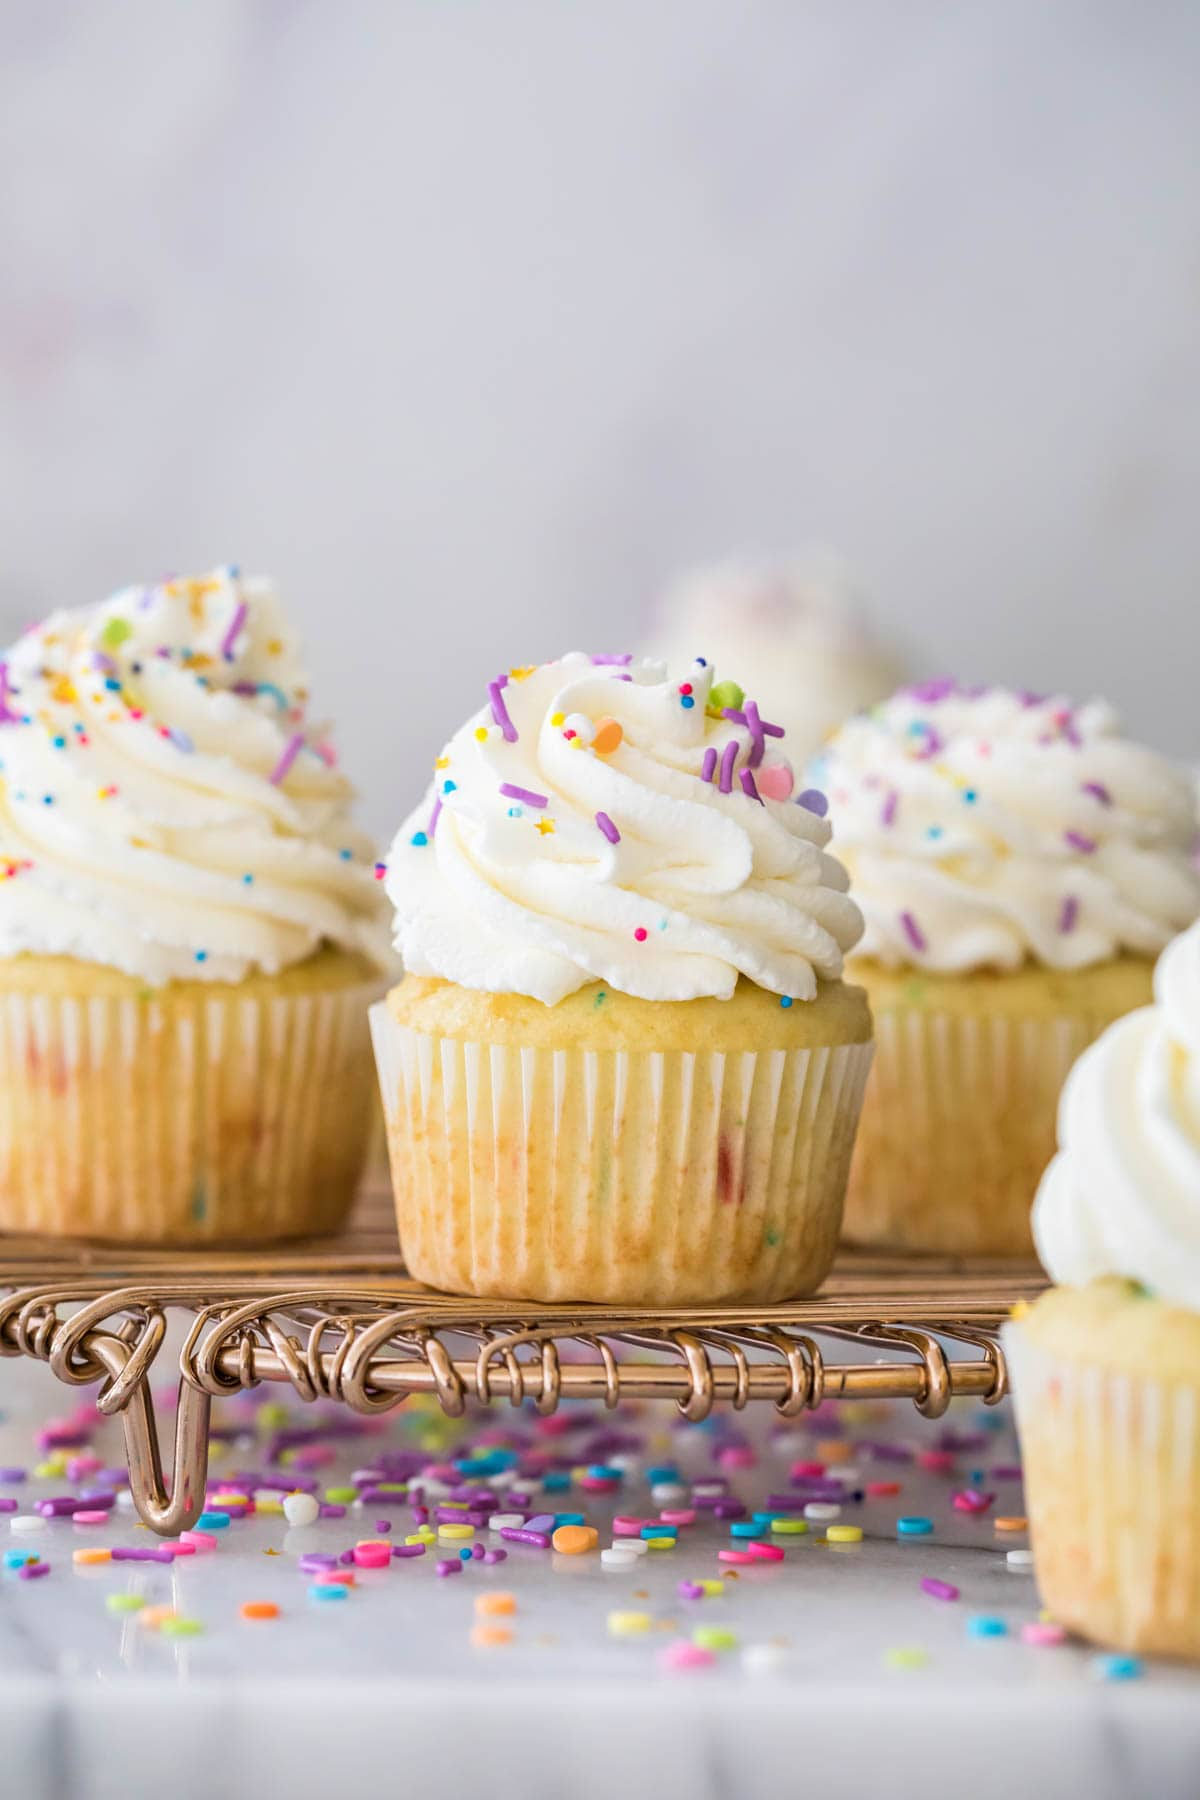 Closeup of vanilla sprinkle cupcake with whipped cream frosting and sprinkles, surrounded by more frosted cupcakes